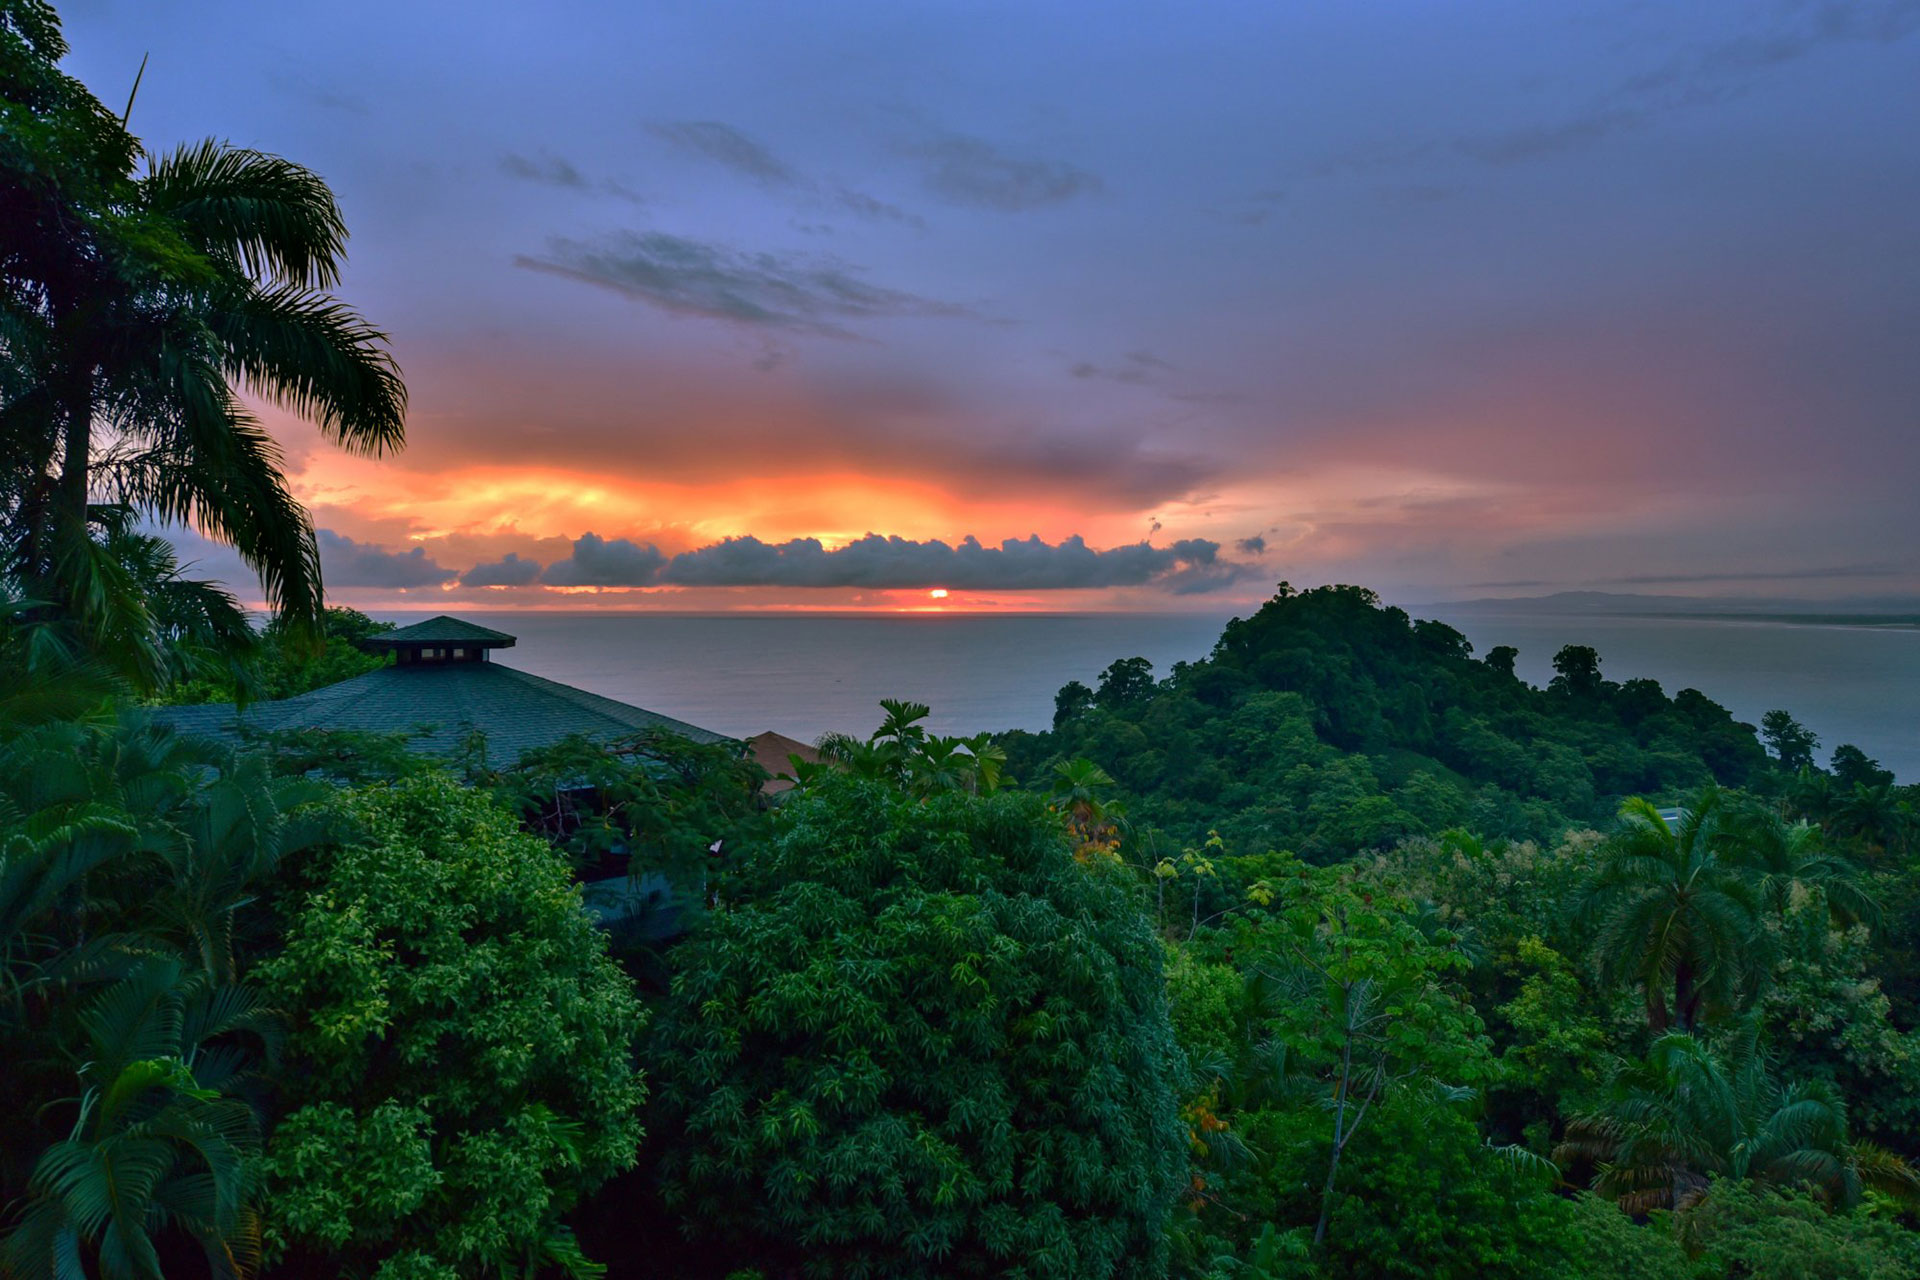 View from Tulemar Buena Vista Luxury Villas in Costa Rica; Courtesy of Tulemar Buena Vista Luxury Villas